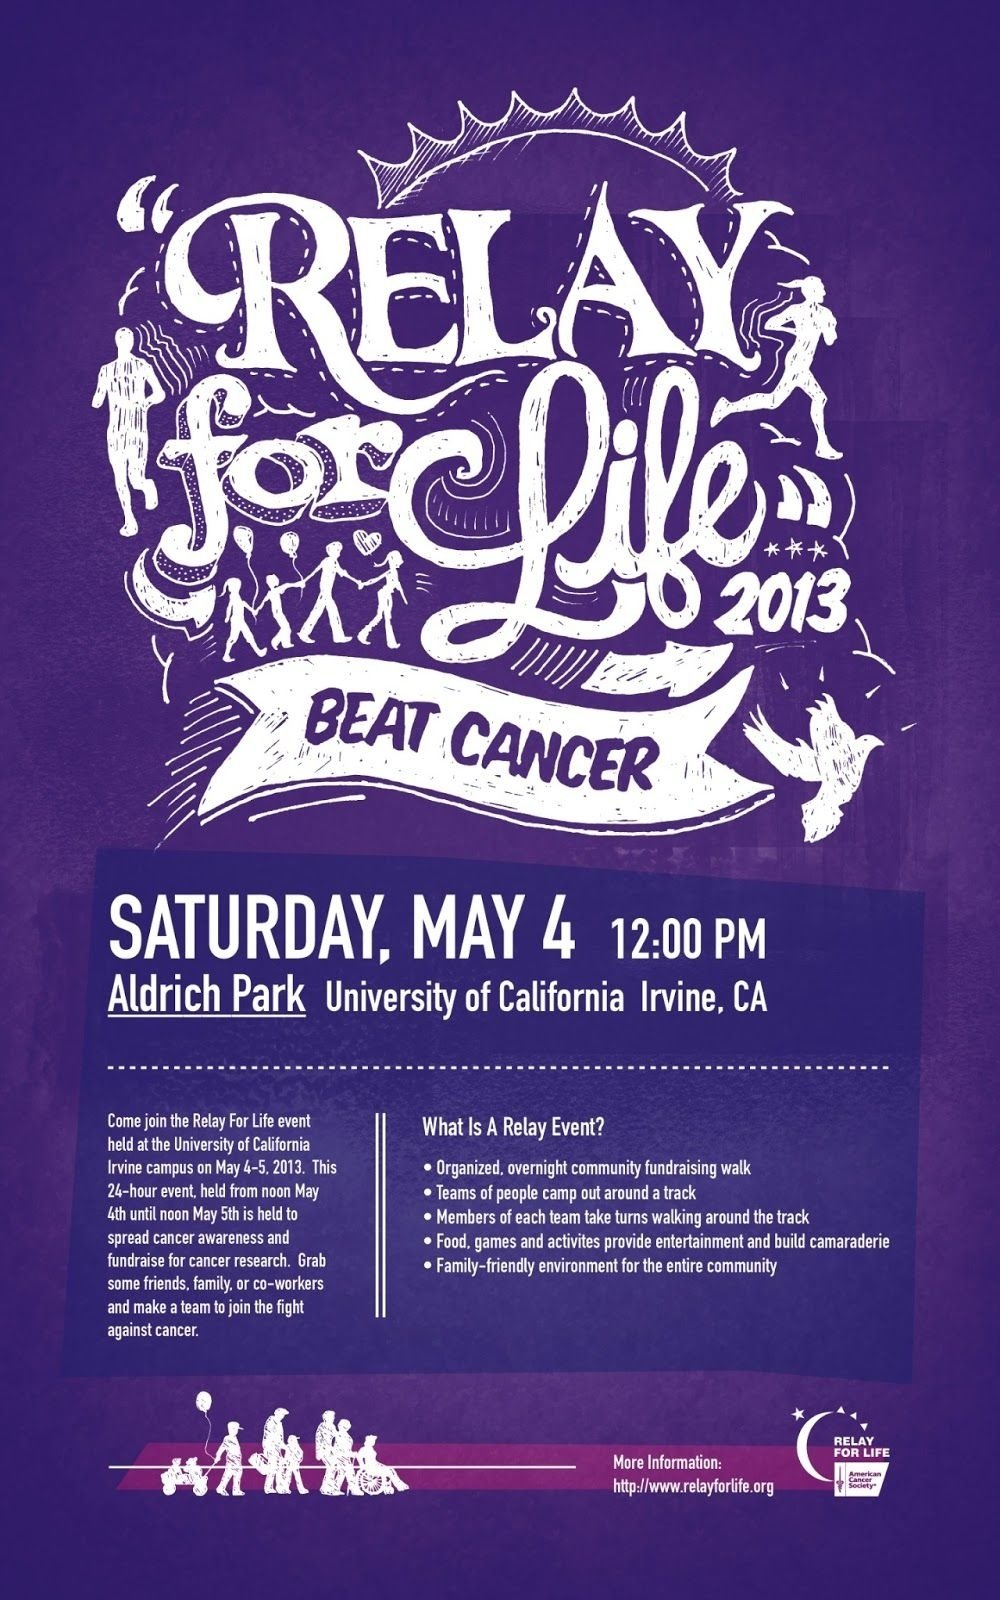 10 Pretty Relay For Life Entertainment Ideas relay for life poster ideas relay for life 2013 relay for life